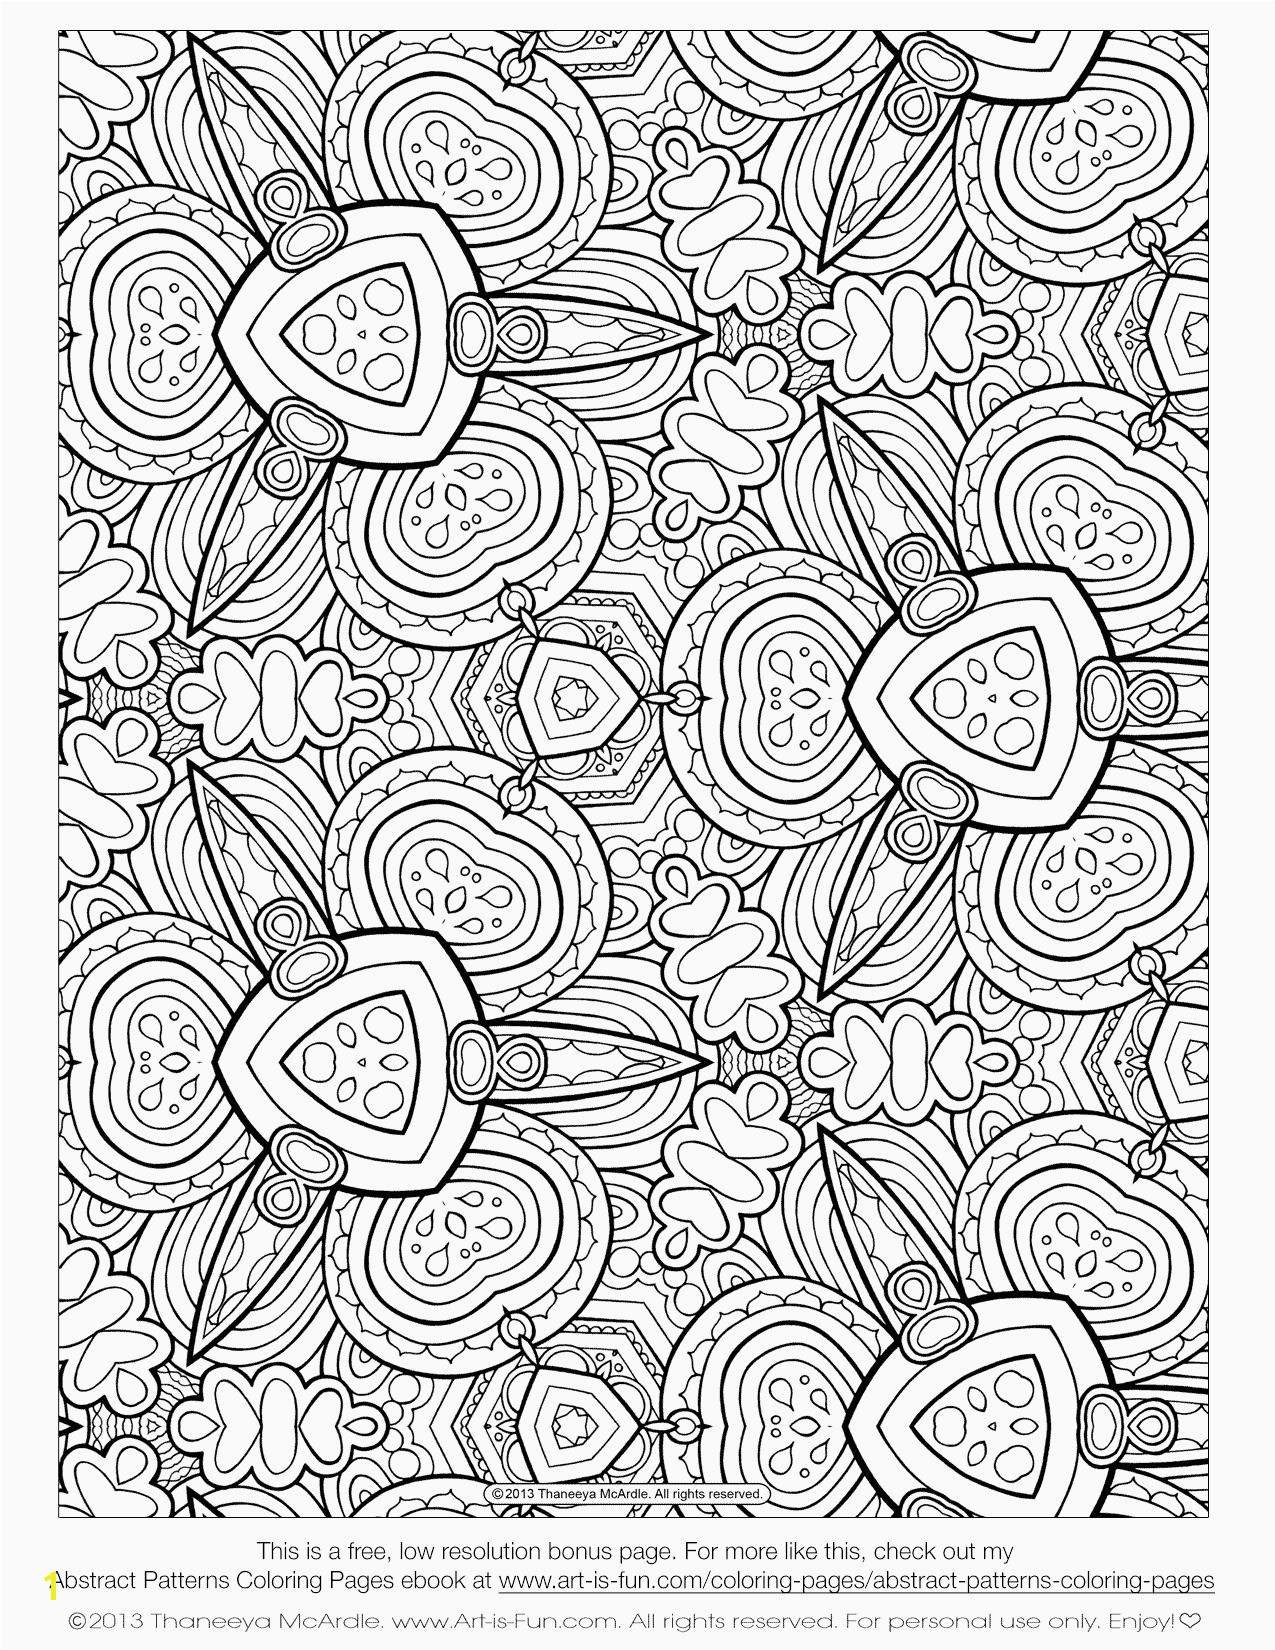 Crayola Free Coloring Pages Fresh Coloring Pic Luxury Free Coloring Pages Elegant Crayola Pages 0d Ruva